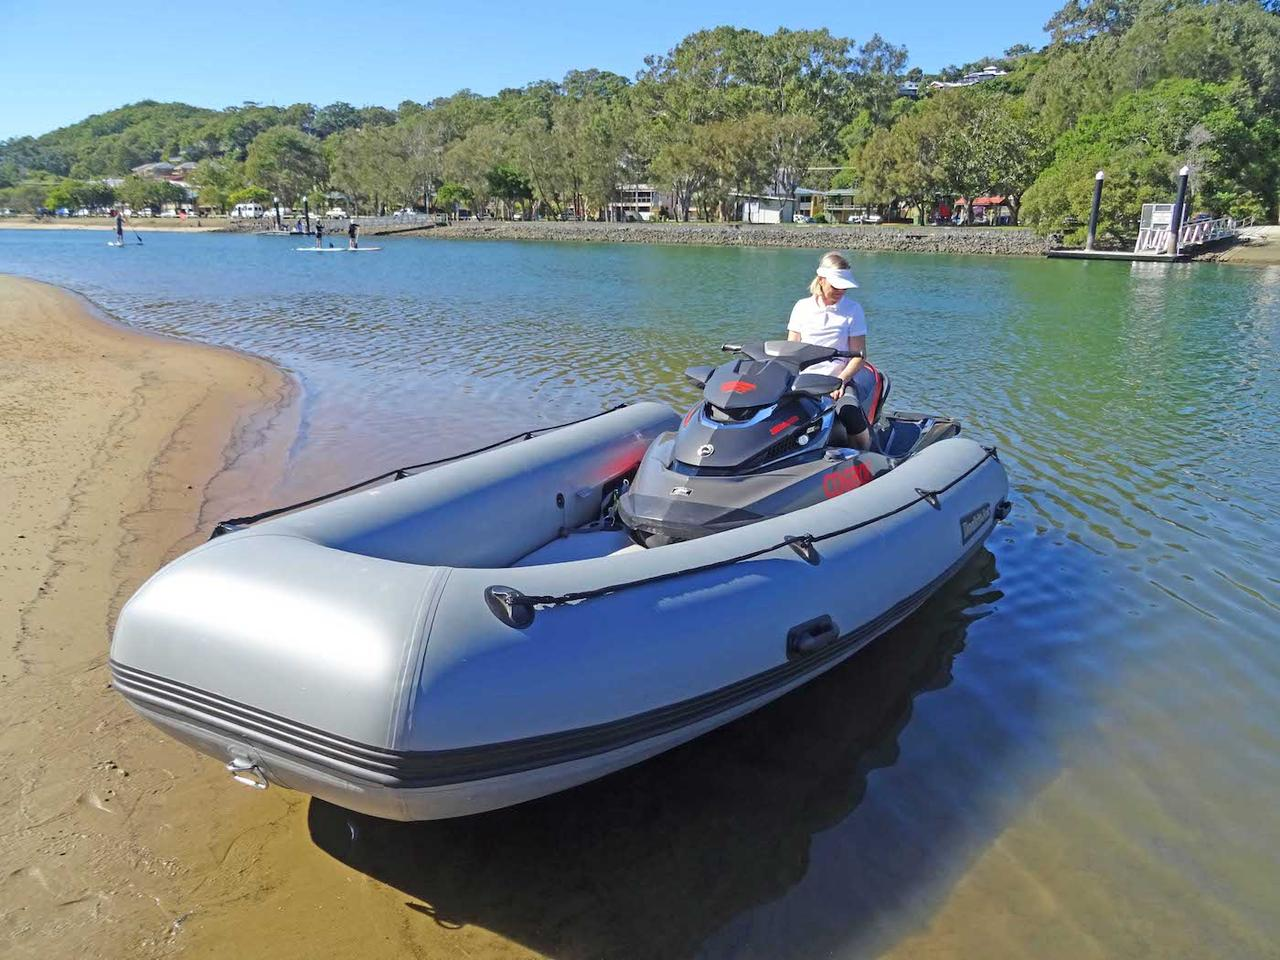 Dockitjet's inflatable boat is powered by jetskis and can carry up to six people